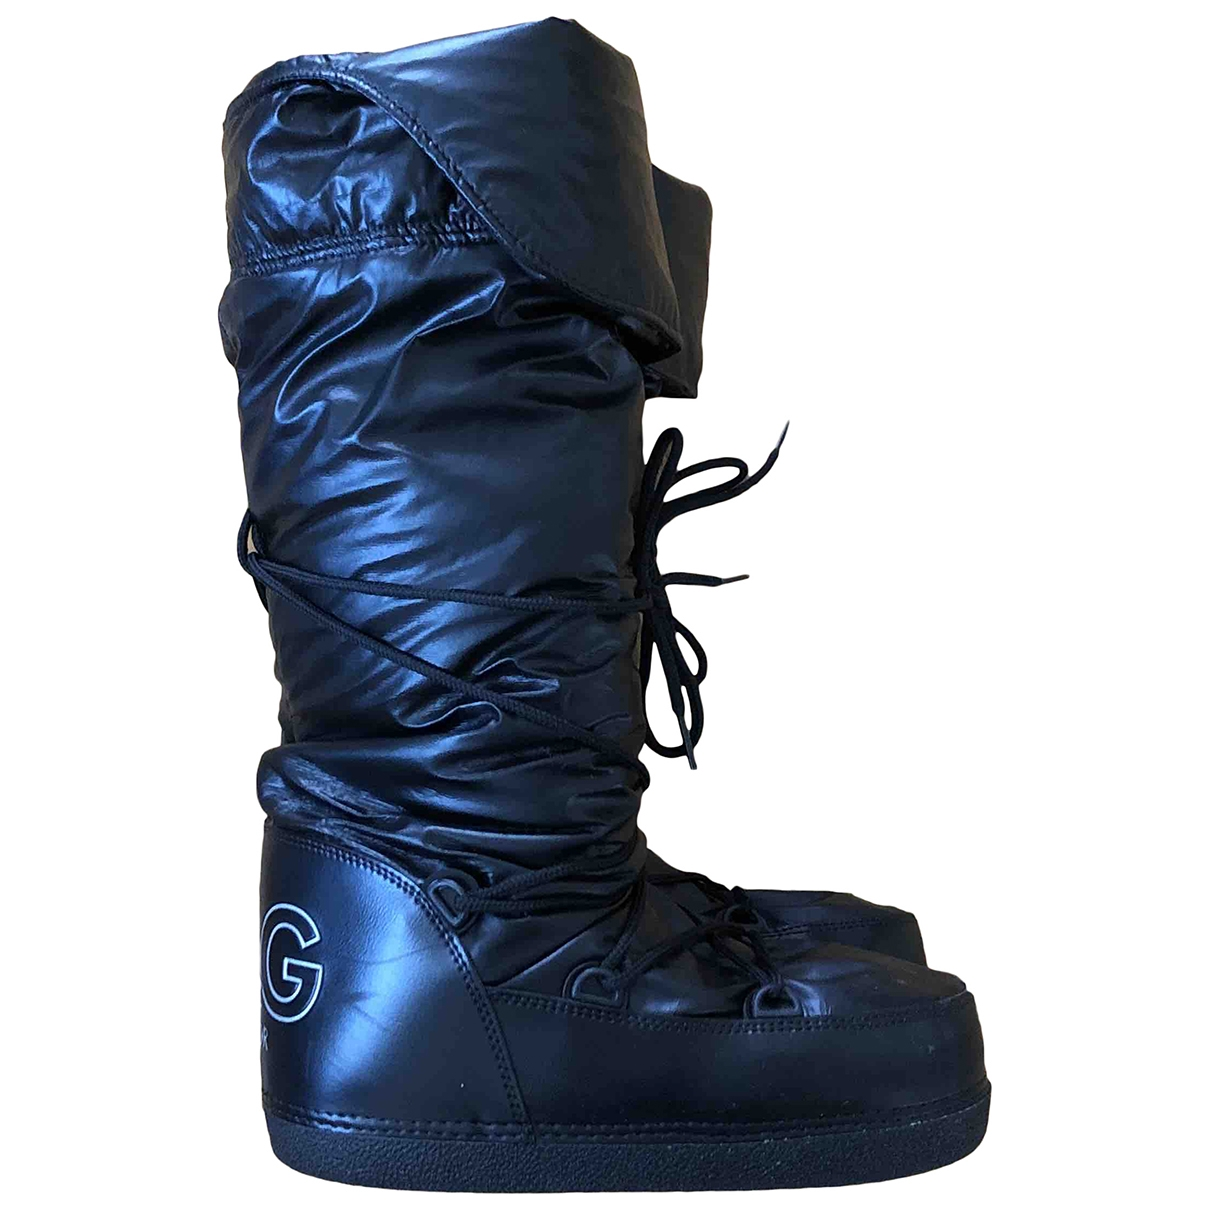 D&g \N Black Boots for Women 38 IT